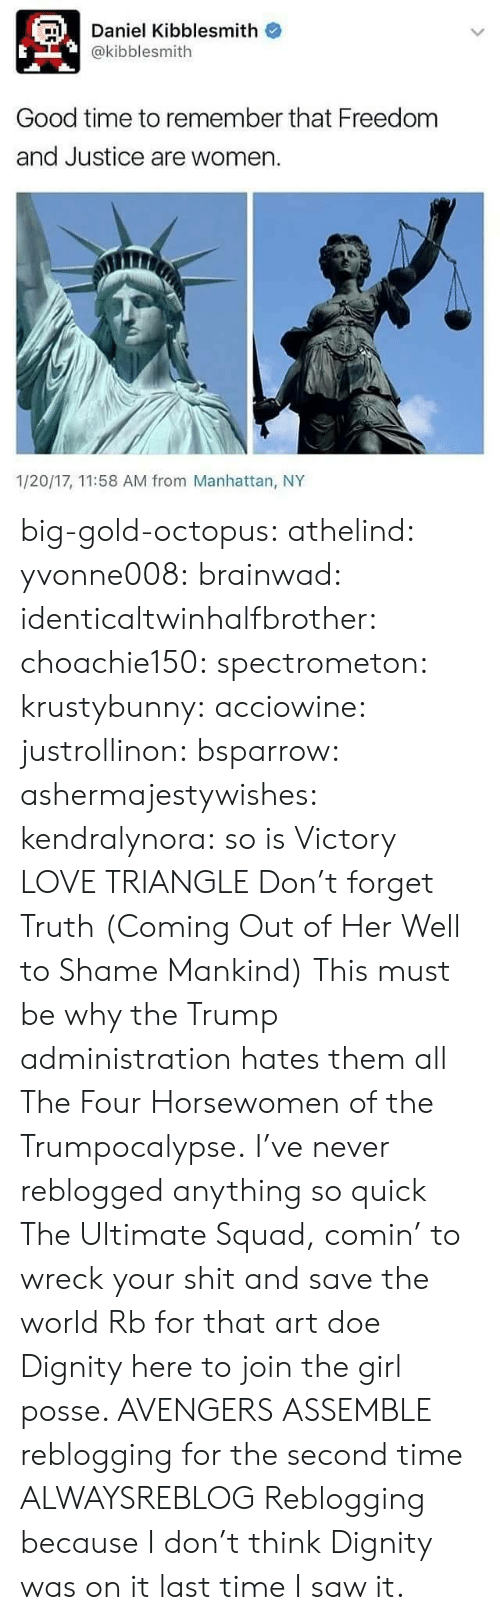 Coming Out: Daniel Kibblesmith o  @kibblesmith  Good time to remember that Freedom  and Justice are women  1/20/17, 11:58 AM from Manhattan, NY big-gold-octopus:   athelind:  yvonne008:  brainwad:  identicaltwinhalfbrother:  choachie150:  spectrometon:  krustybunny:  acciowine:  justrollinon:  bsparrow:  ashermajestywishes:  kendralynora:  so is Victory  LOVE TRIANGLE  Don't forget Truth (Coming Out of Her Well to Shame Mankind)  This must be why the Trump administration hates them all    The Four Horsewomen of the Trumpocalypse.  I've never reblogged anything so quick  The Ultimate Squad, comin' to wreck your shit and save the world   Rb for that art doe  Dignity here to join the girl posse.    AVENGERS ASSEMBLE  reblogging for the second time  ALWAYSREBLOG  Reblogging because I don't think Dignity was on it last time I saw it.